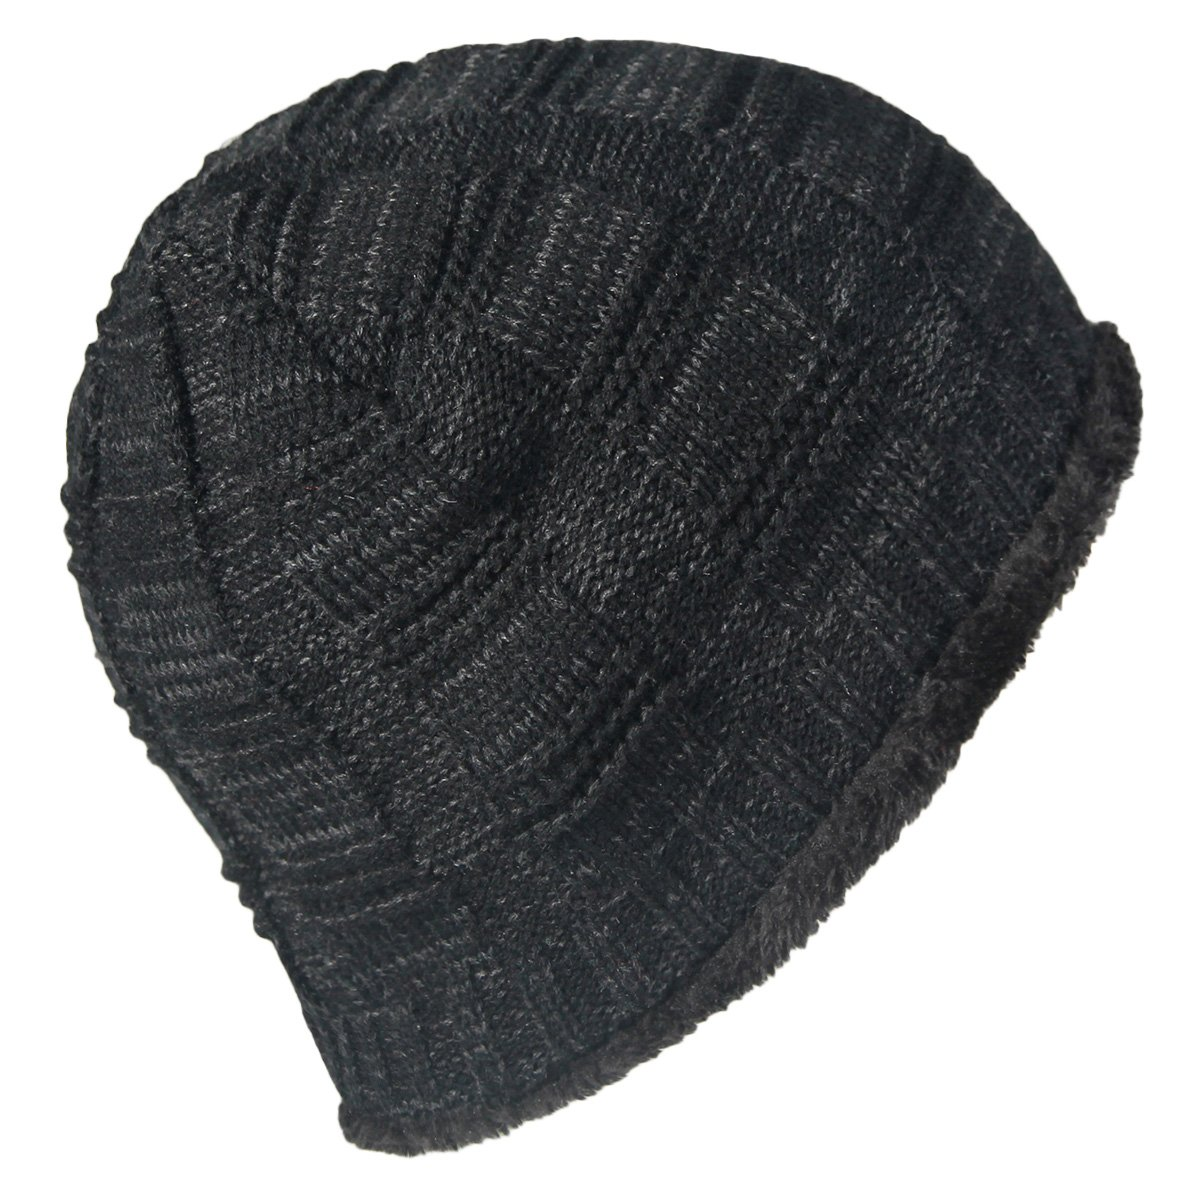 63a72e808b2b6 LETHMIK Unique Ribbed Knit Beanie Warm Thick Fleece Lined Hat Mens Winter  Skull Cap Black at Amazon Men's Clothing store: